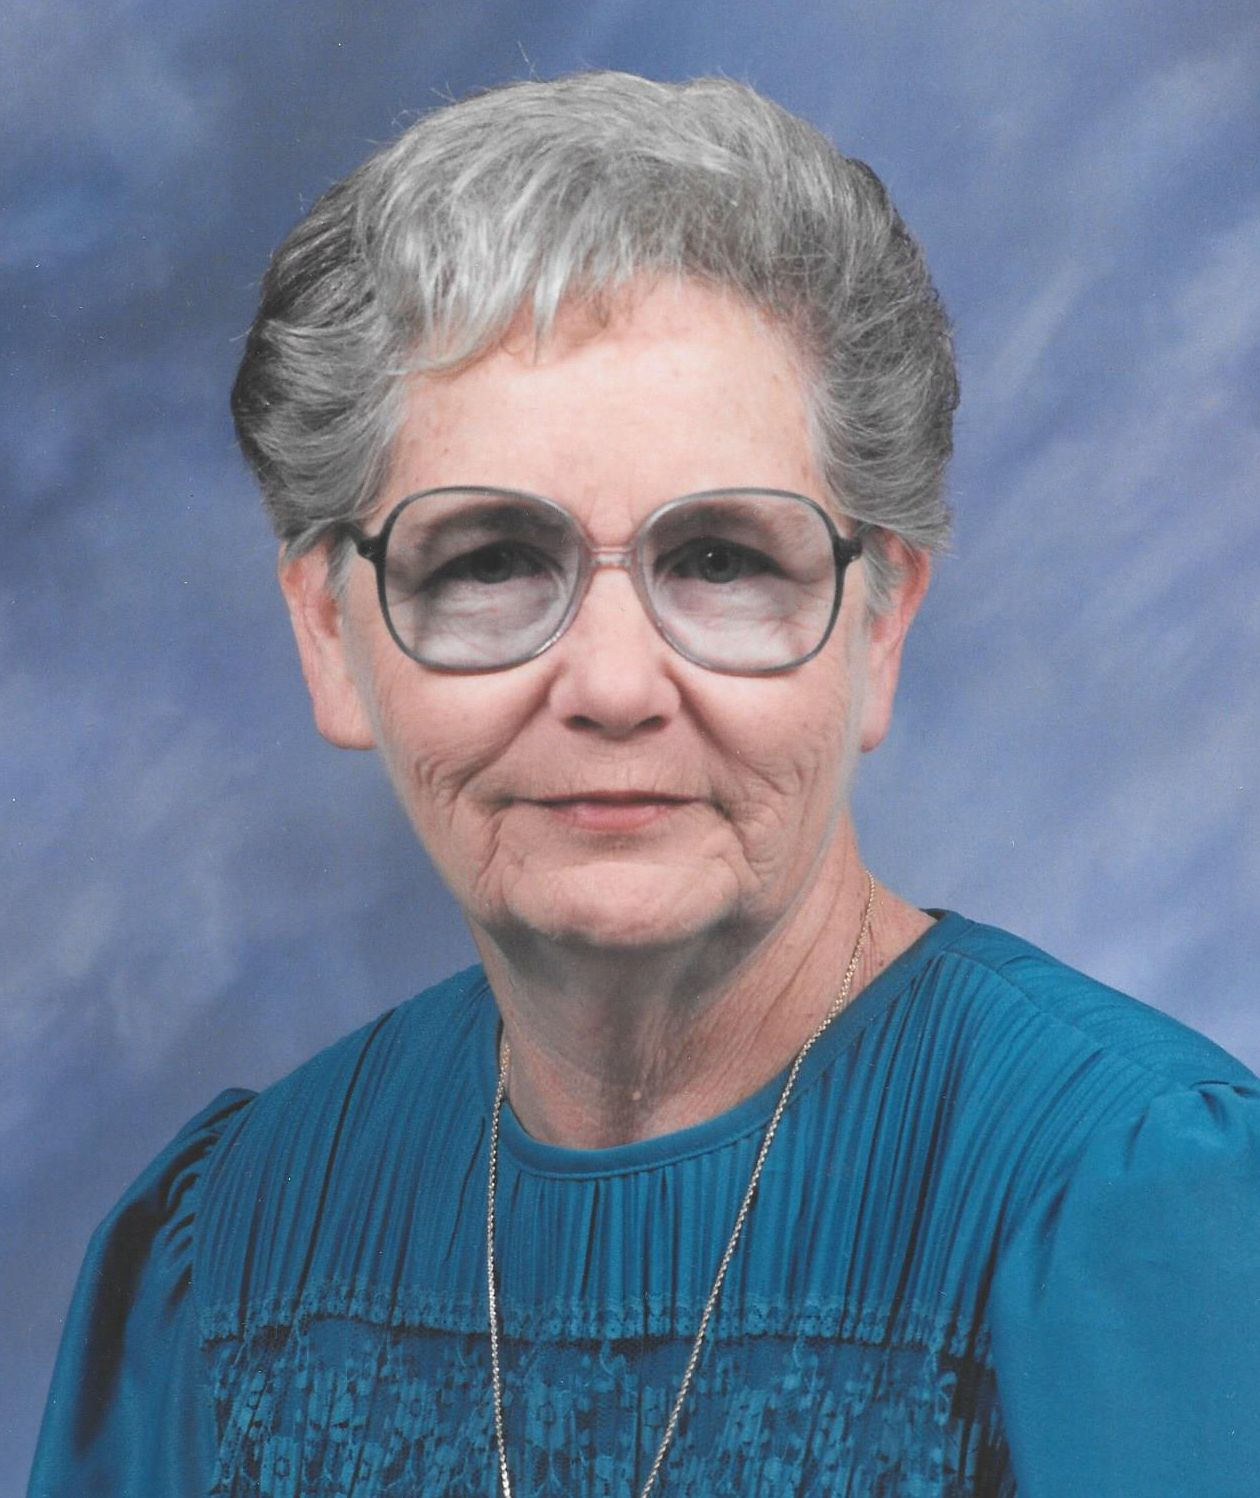 Obituary image of Lillie Vance Gillis